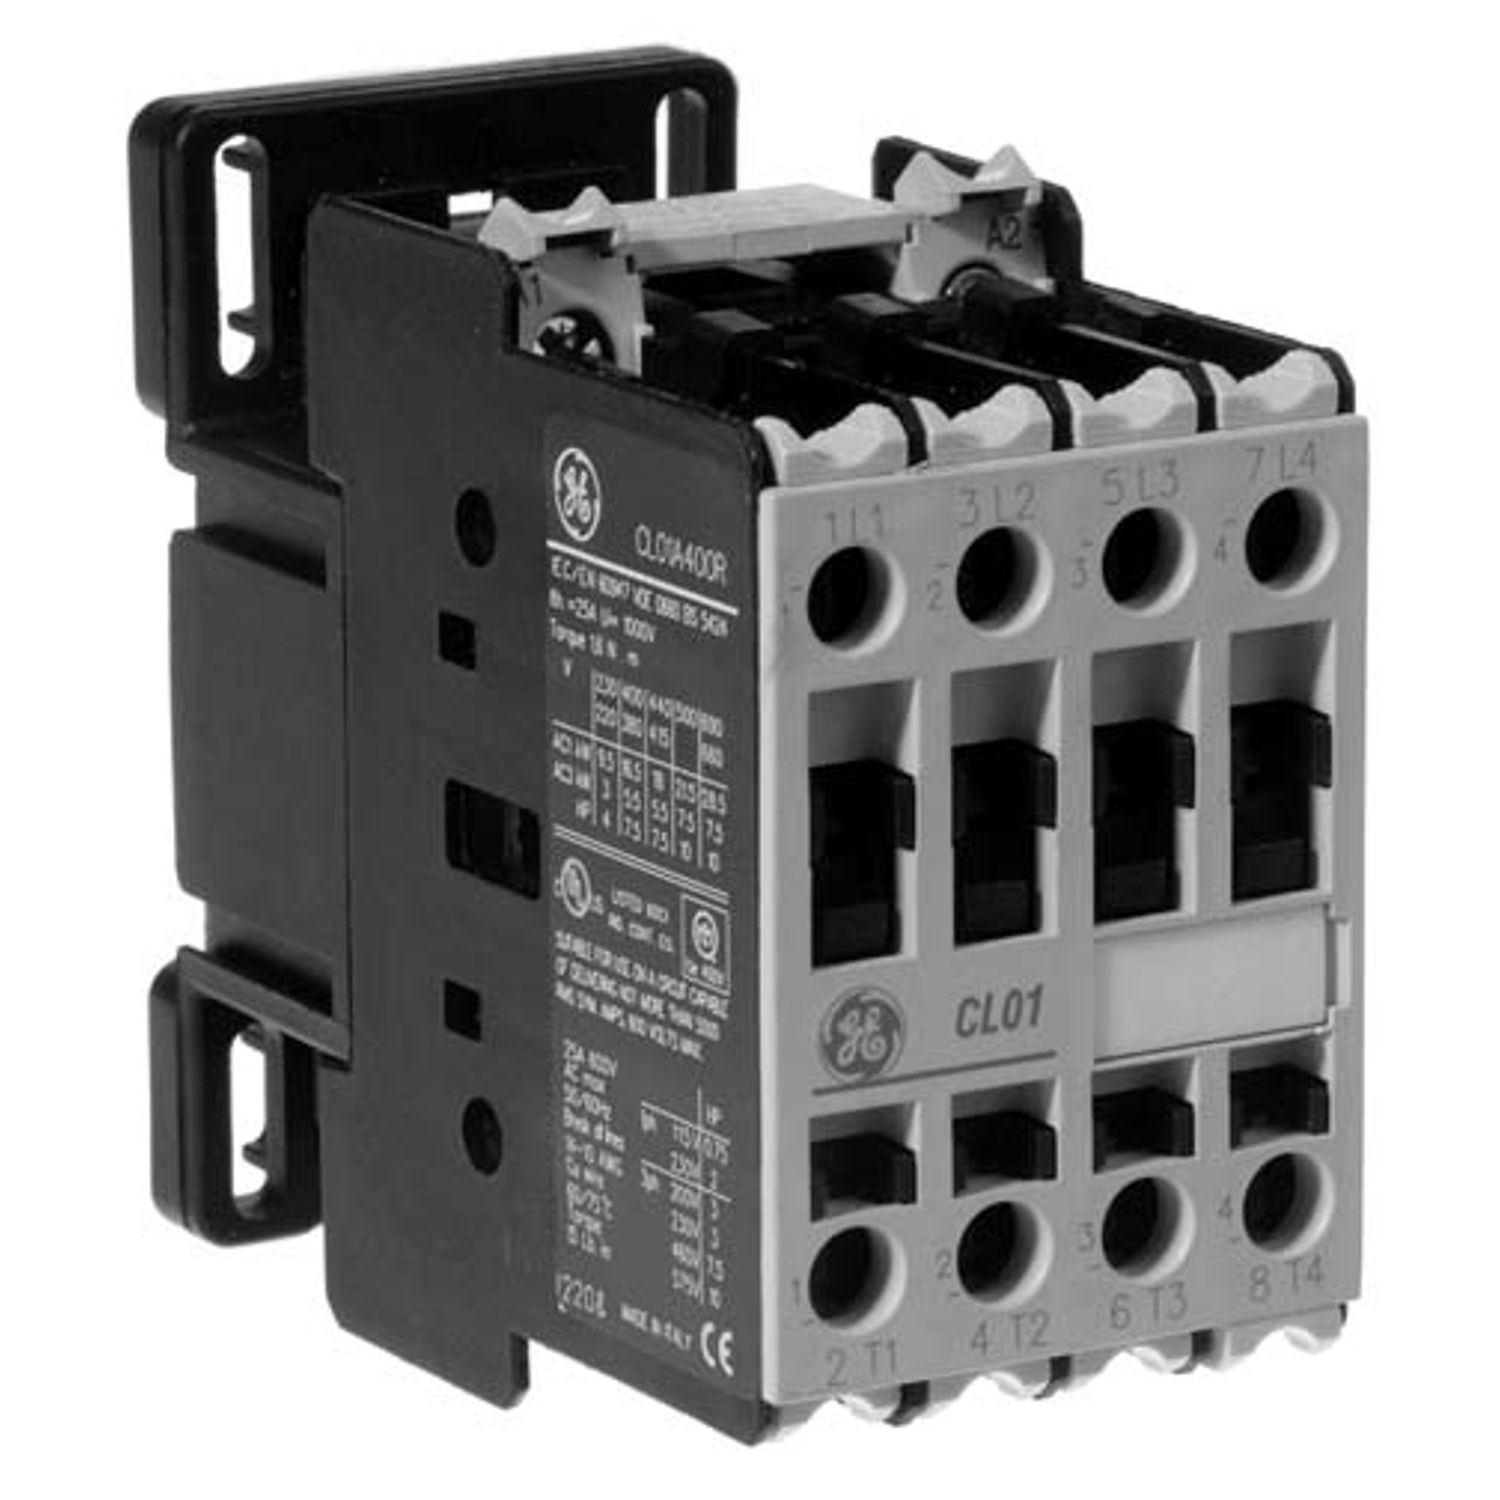 General Electric CL01A310TJ C-2000 Full VoltaGeneral Electric Non-Reversing  IEC Contactor, 110/120 VAC Coil, 13.8 A at 460 VAC, 3NO, 3 Poles